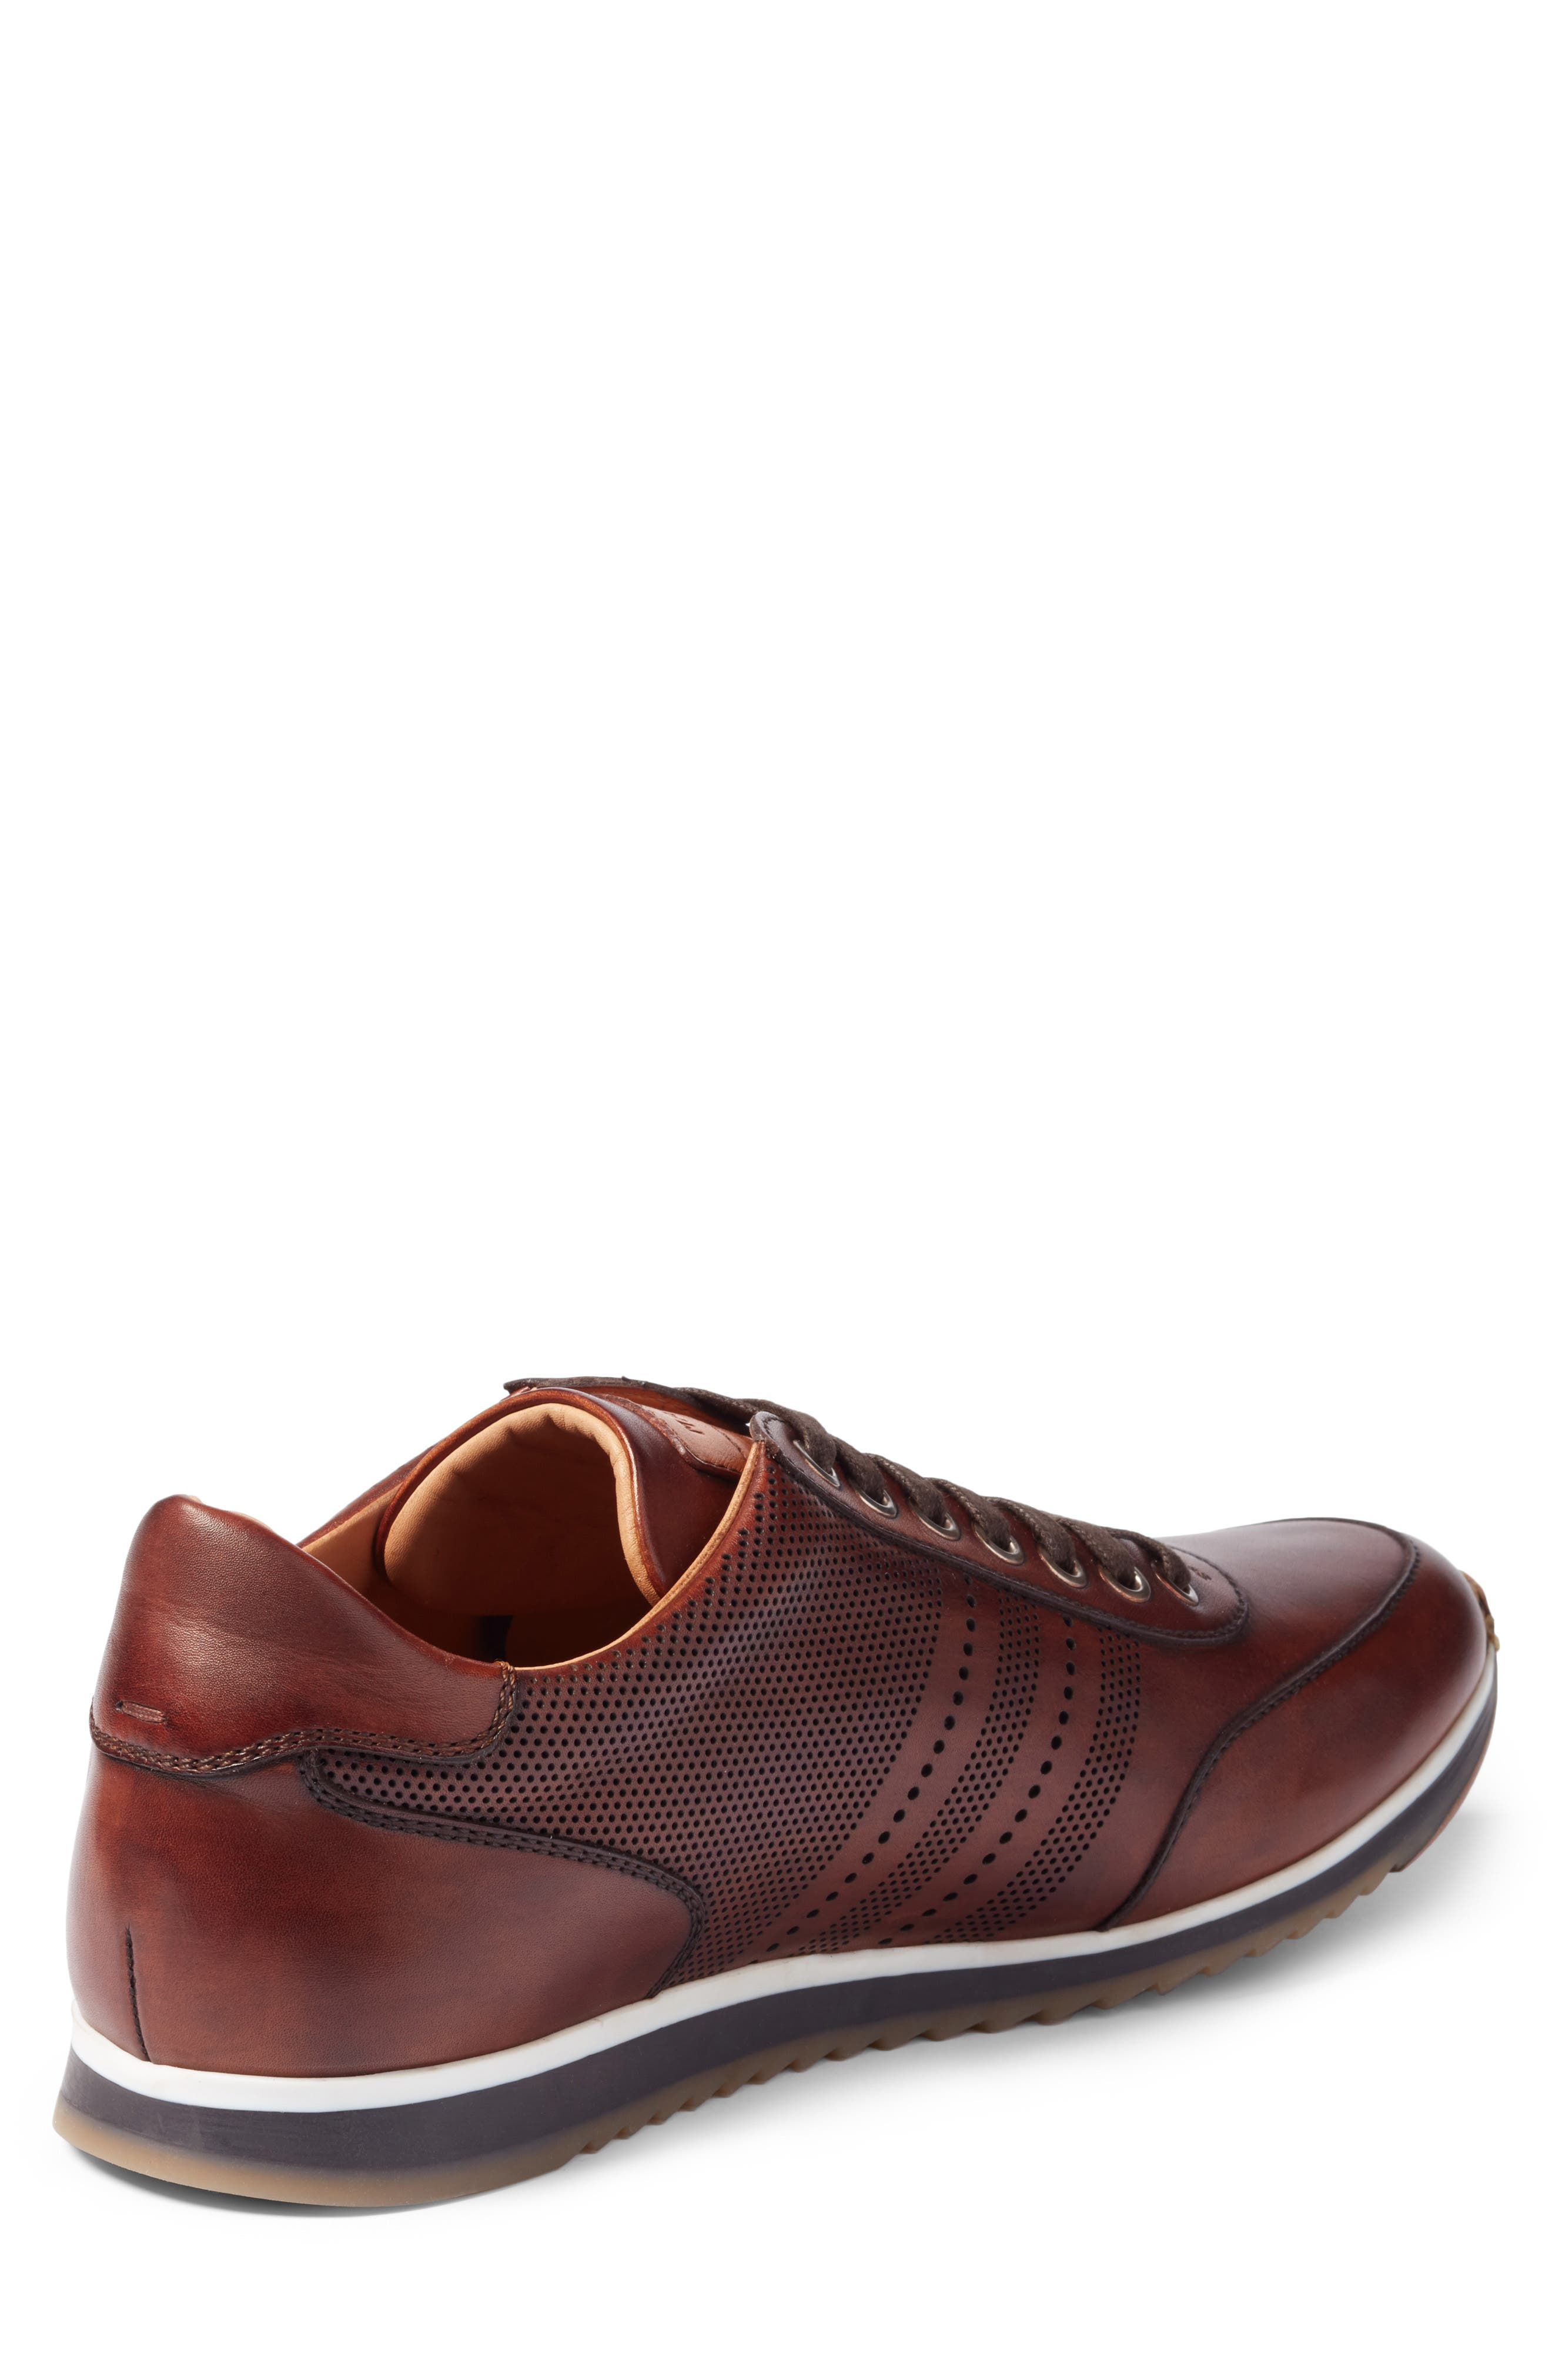 Alternate Image 2  - Magnanni Merino Sneaker (Men)